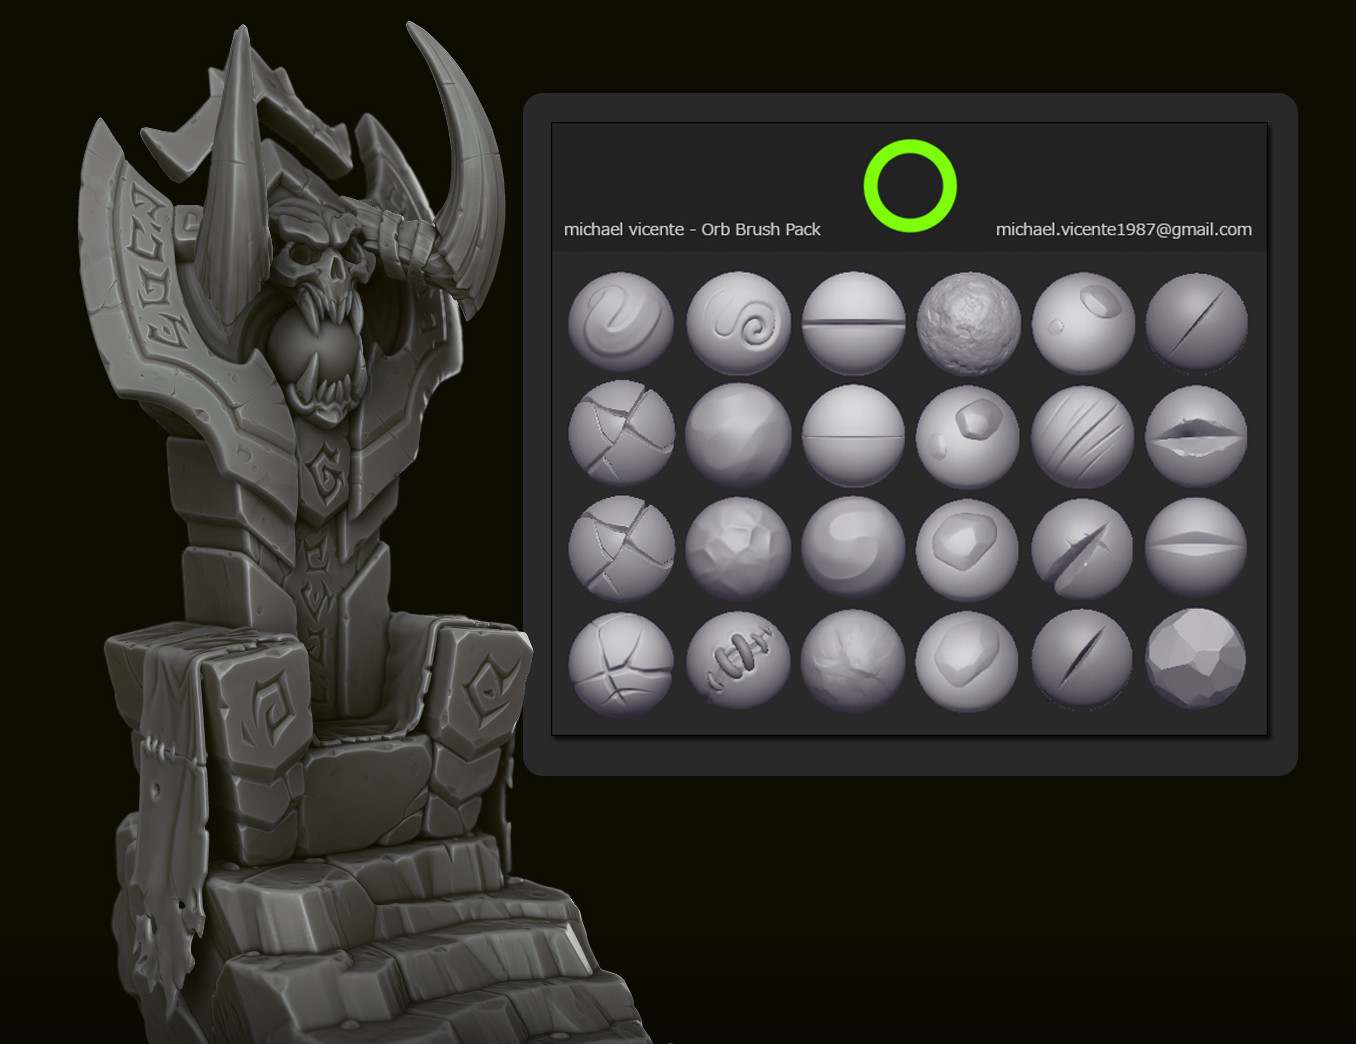 ArtStation - Orb Brush Pack, Michael vicente - Orb